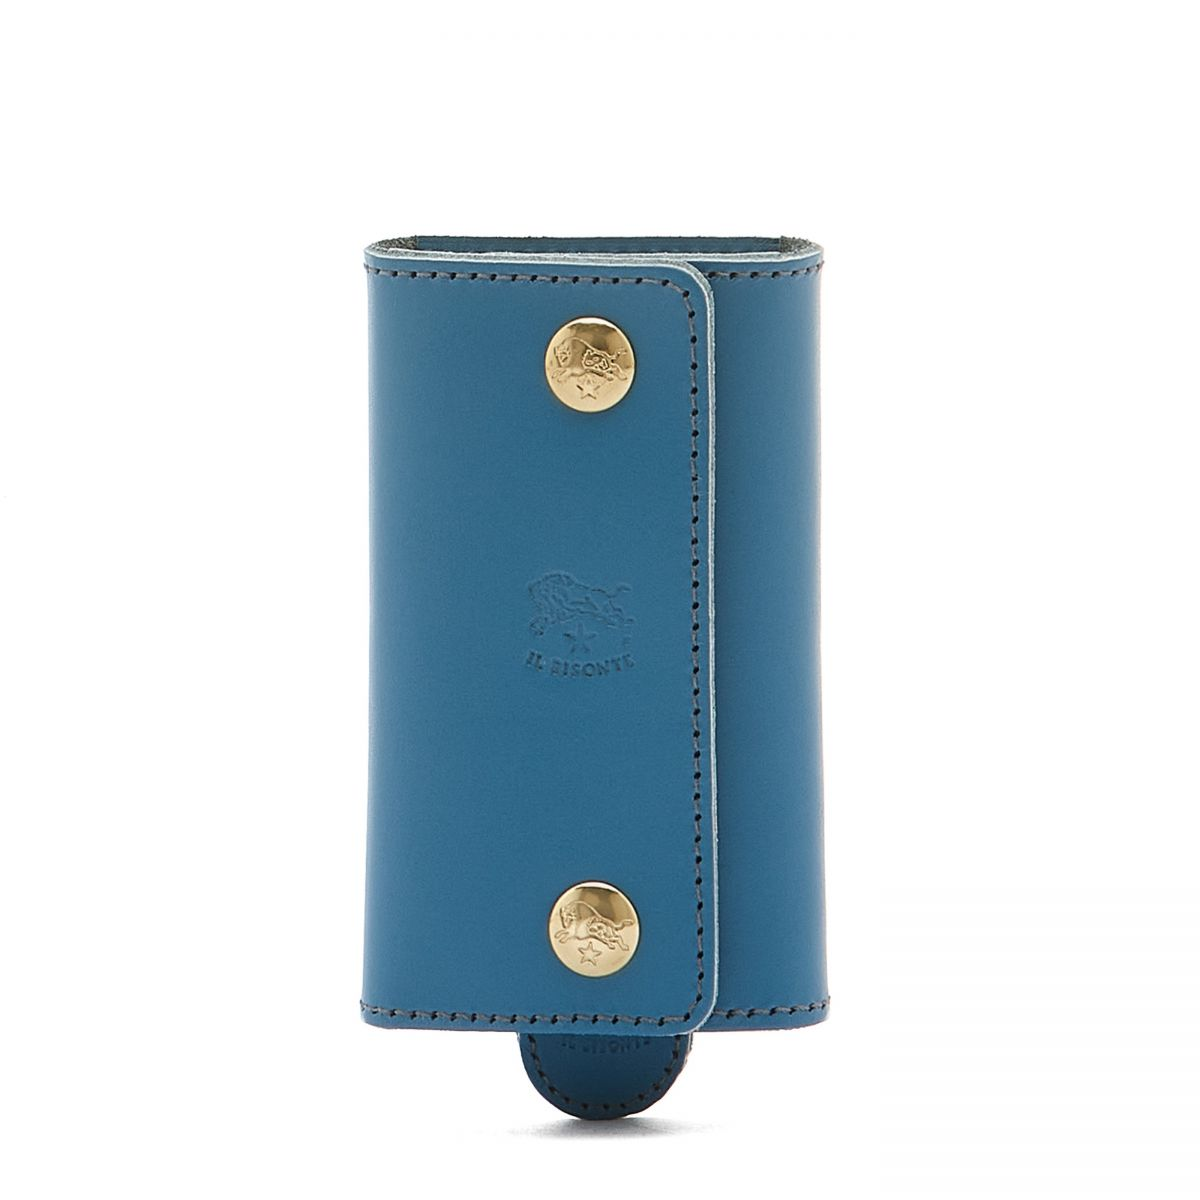 Keyring in Cowhide Double Leather color Blue Teal - SKH045   Details